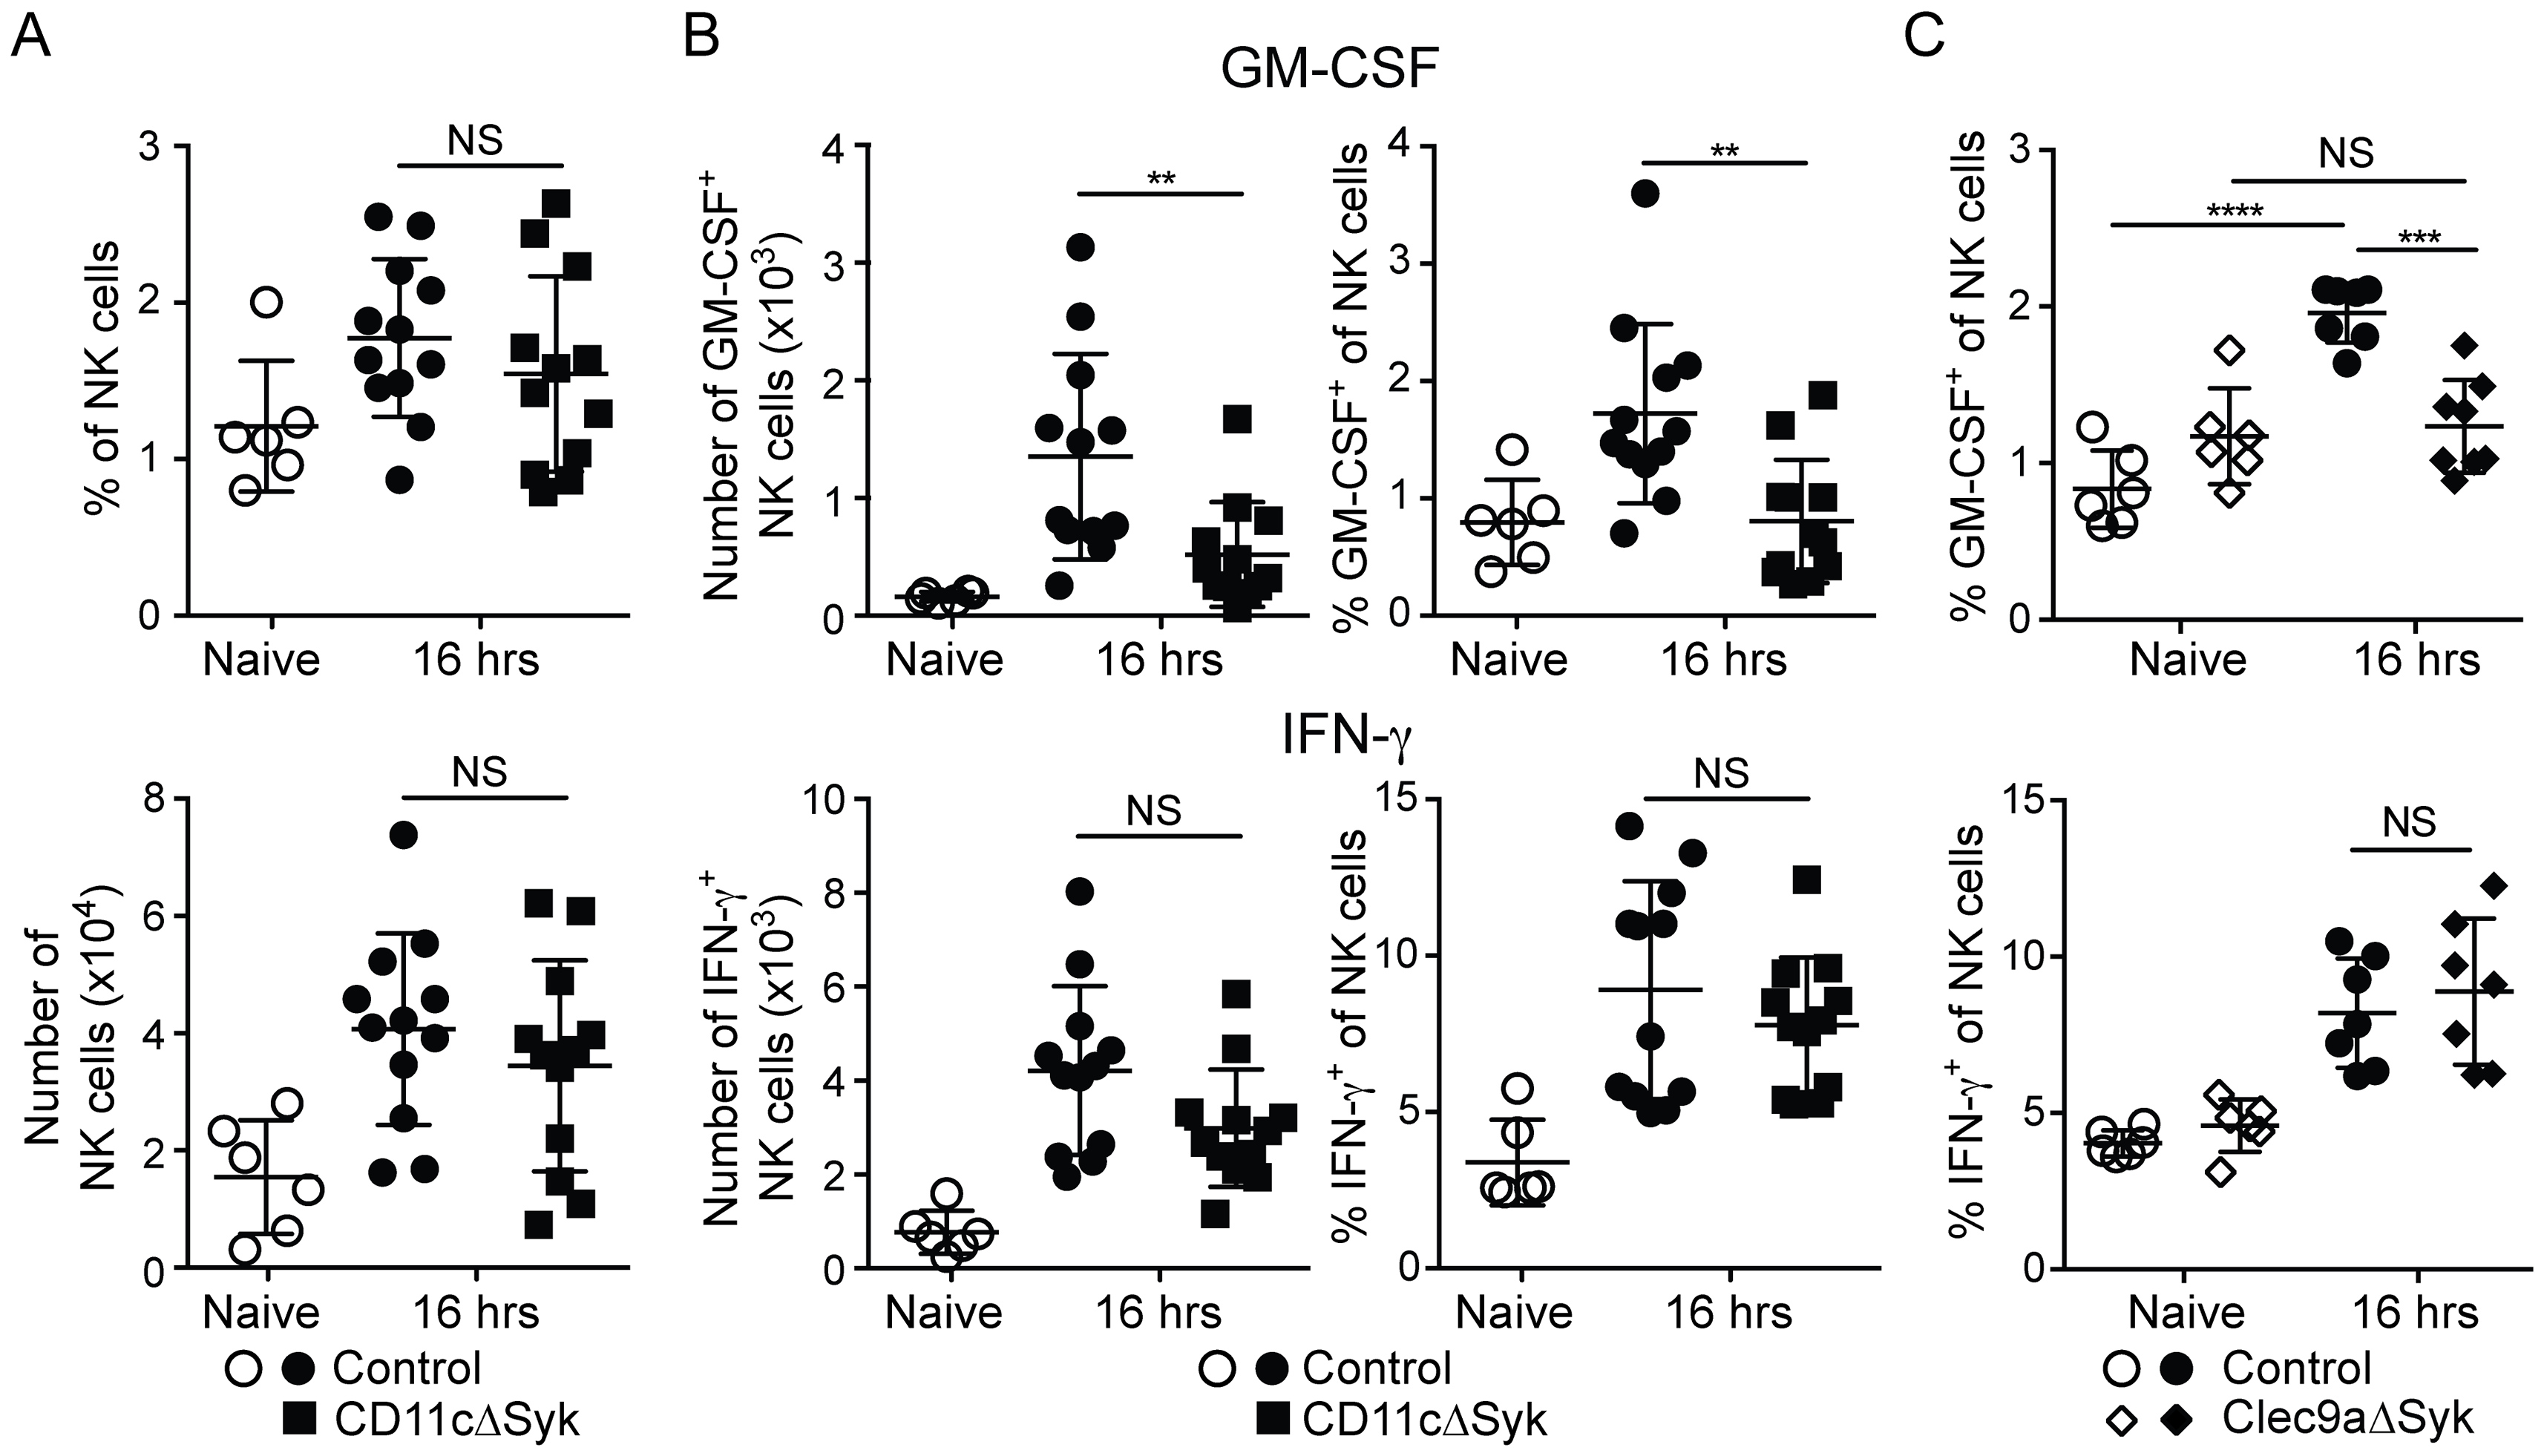 GM-CSF-producing NK cells are selectively reduced in infected CD11cΔSyk and Clec9aΔSyk mice.